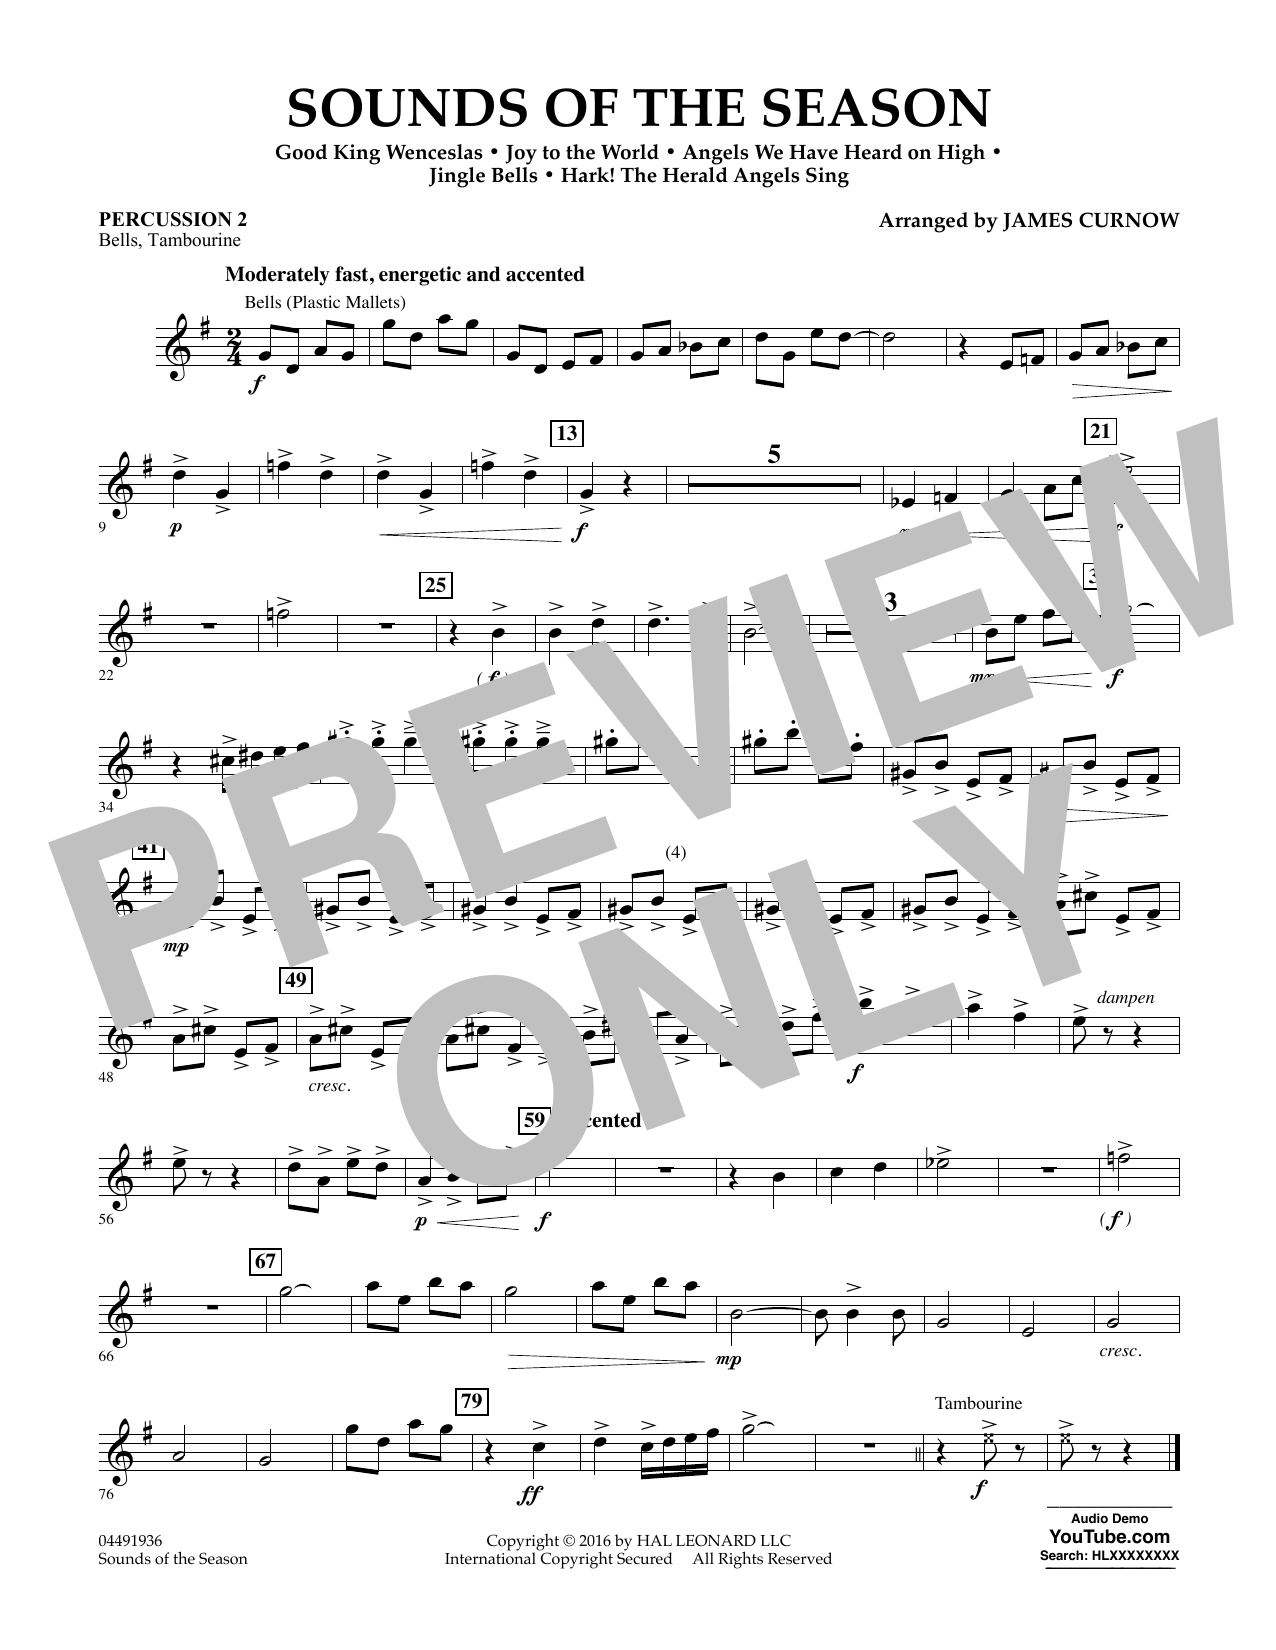 Sounds of the Season - Percussion 2 Sheet Music